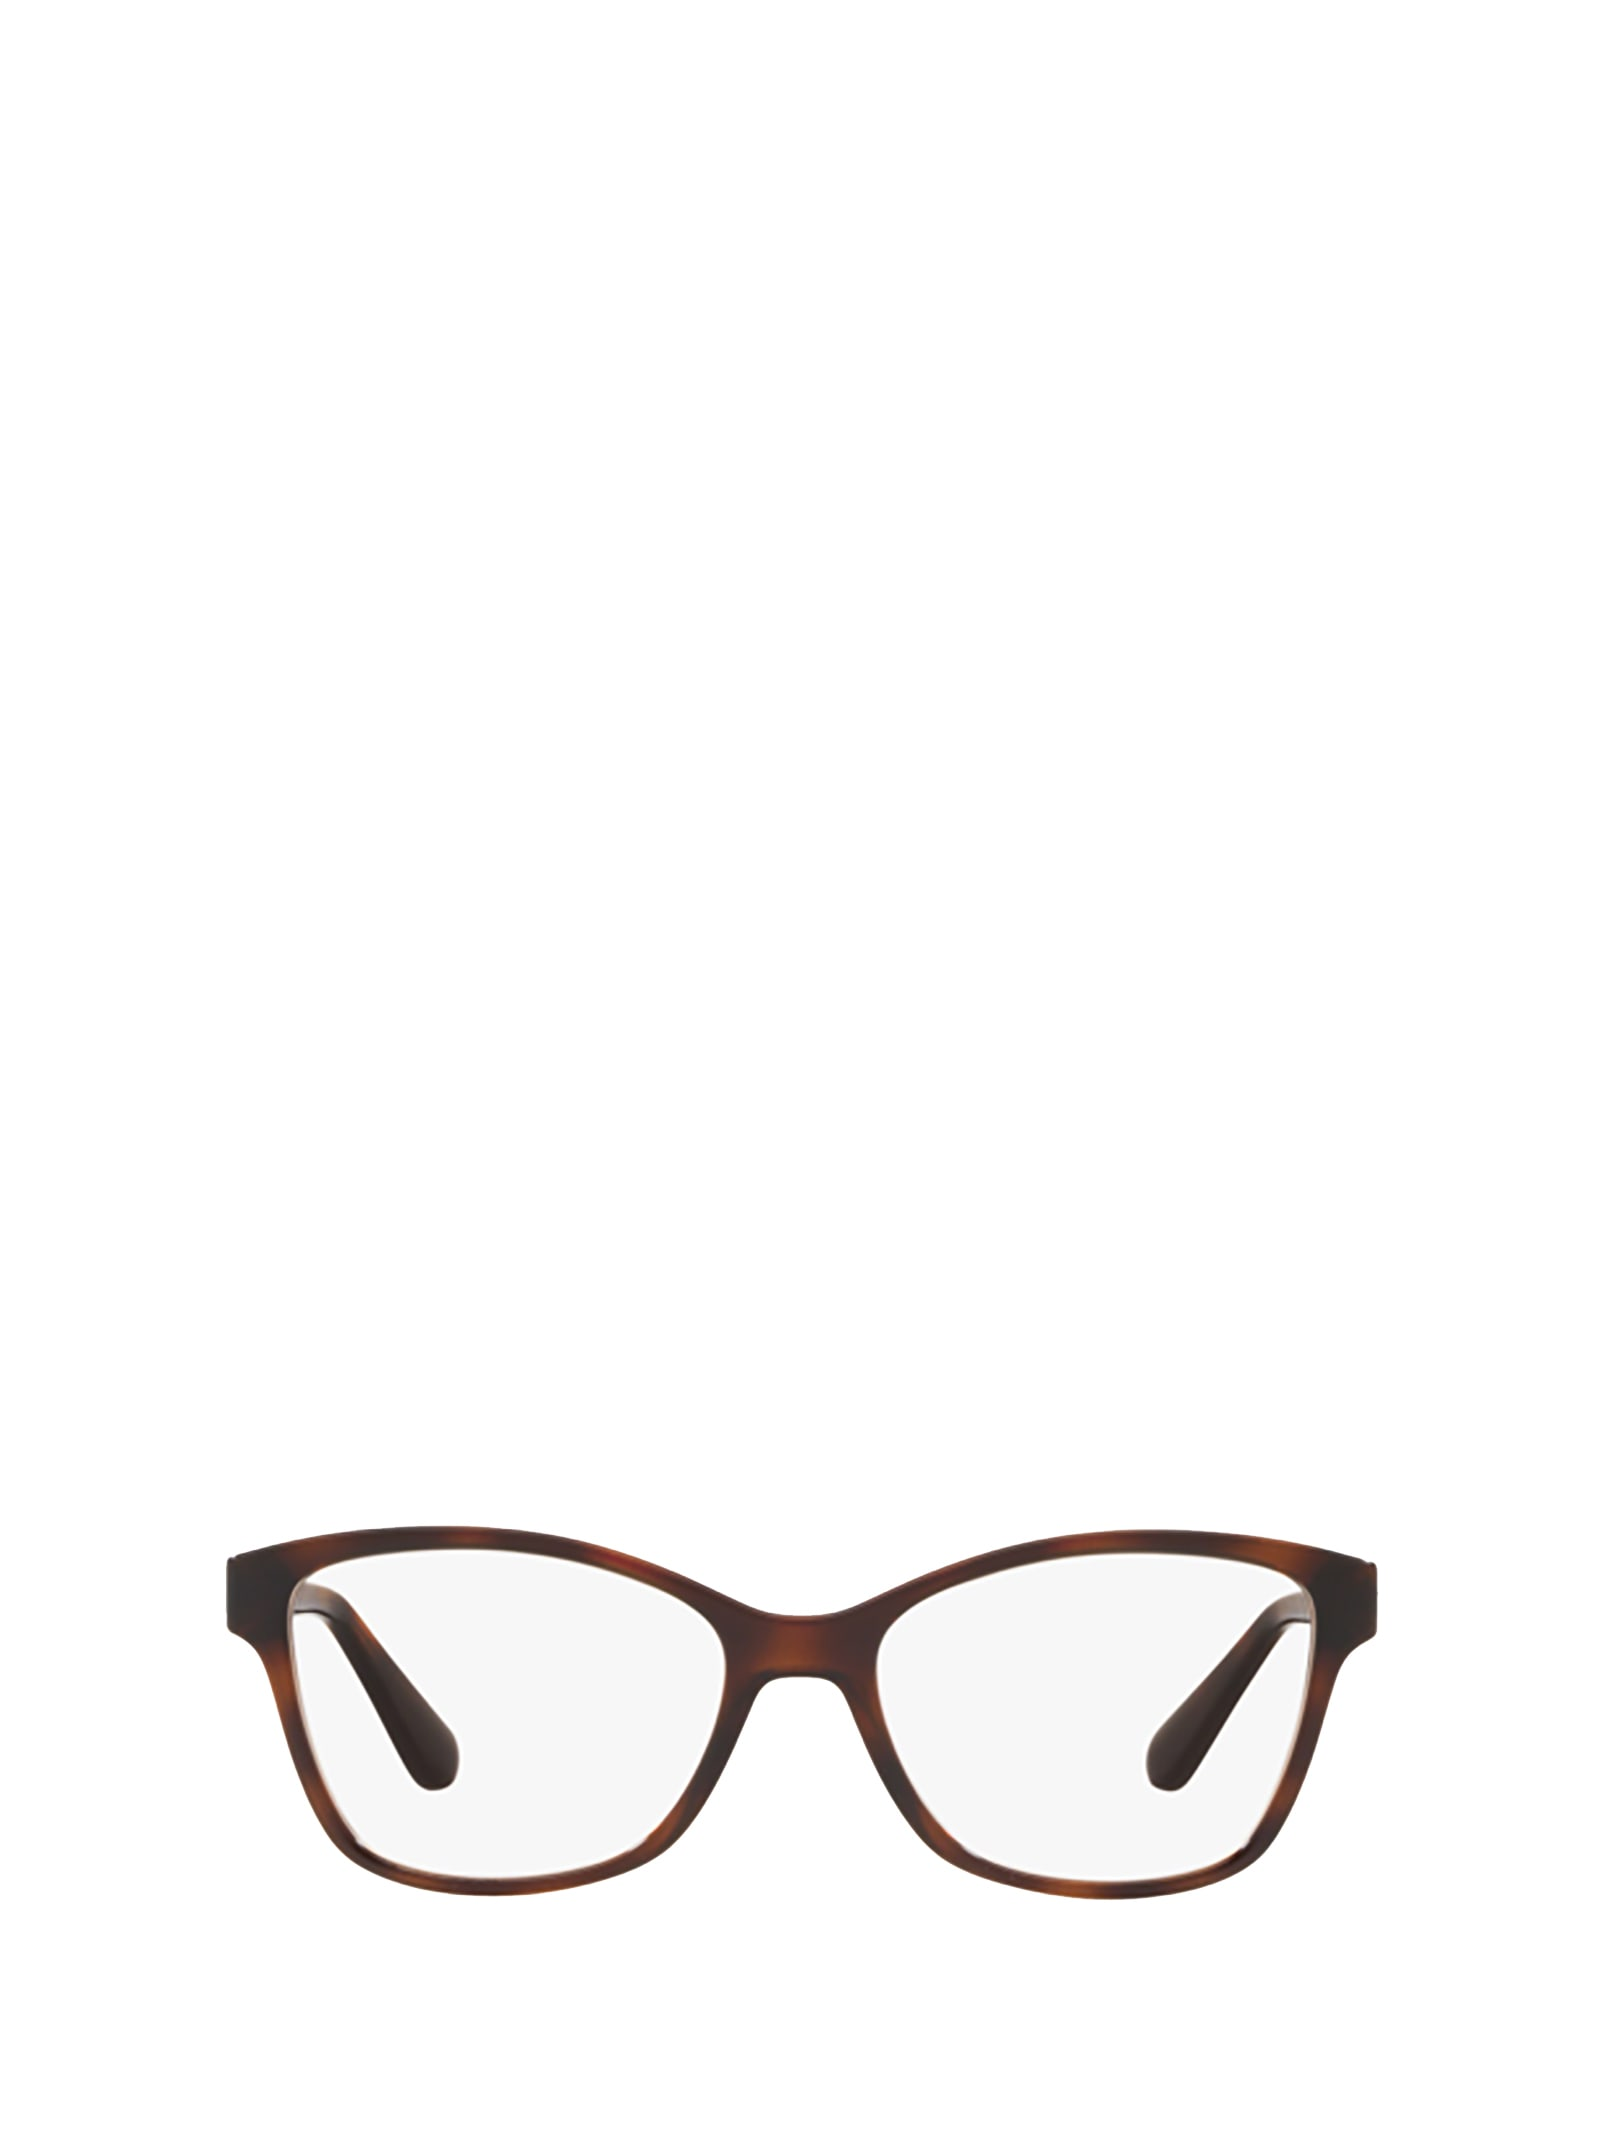 Vogue Eyewear Vogue Vo2998 Top Havana / Light Brown Glasses